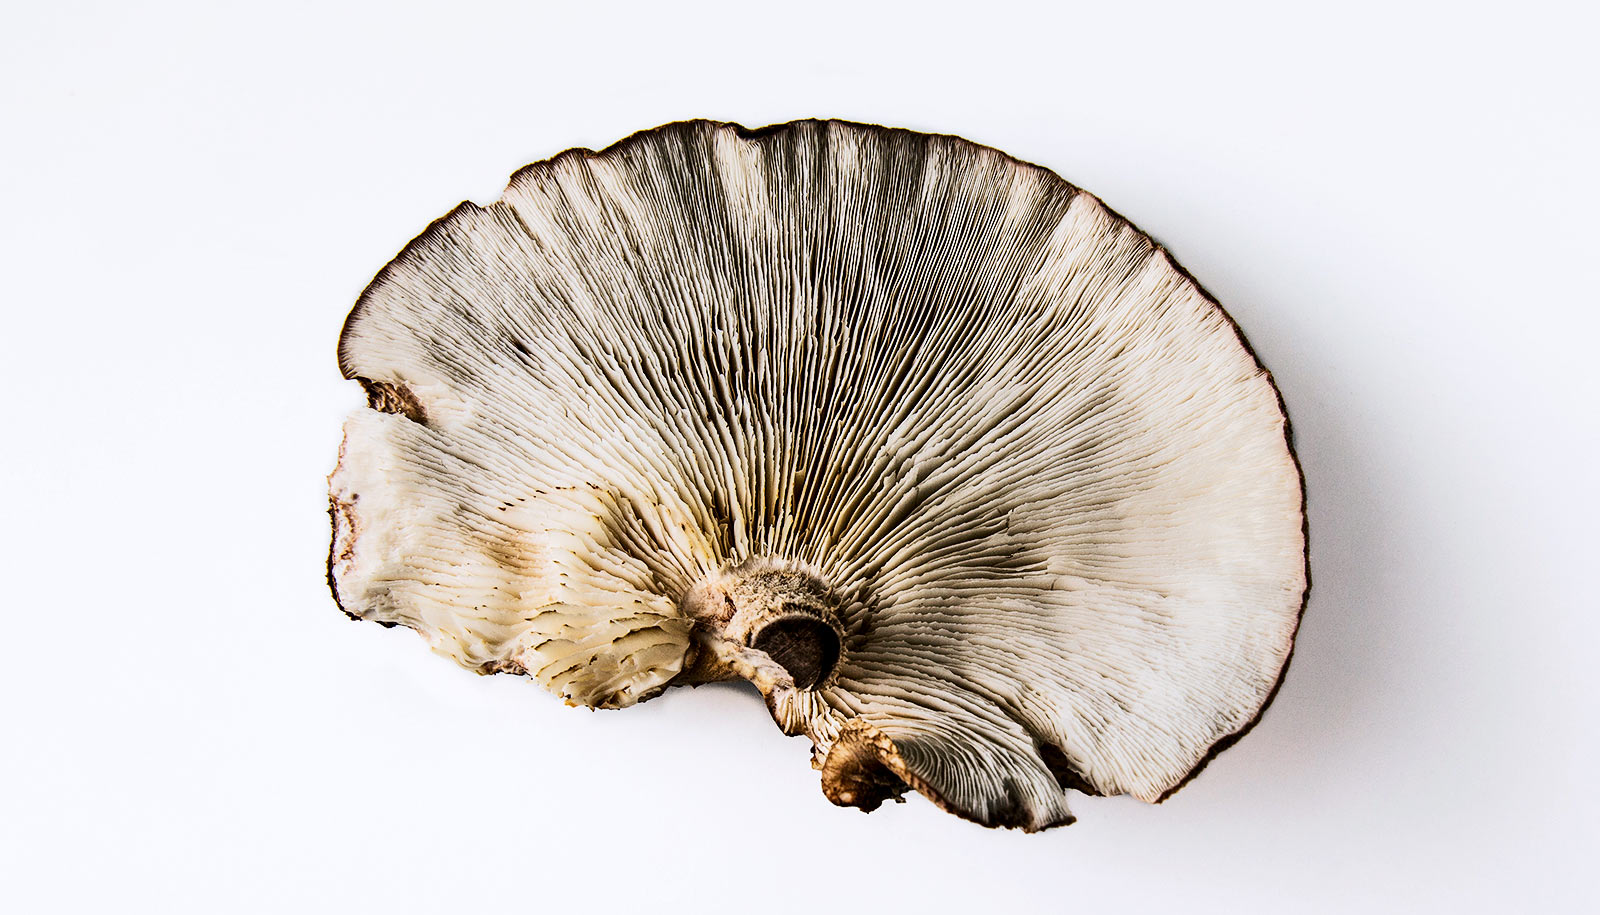 The Brain and The Mushroom appear to be a mirror onto life itself